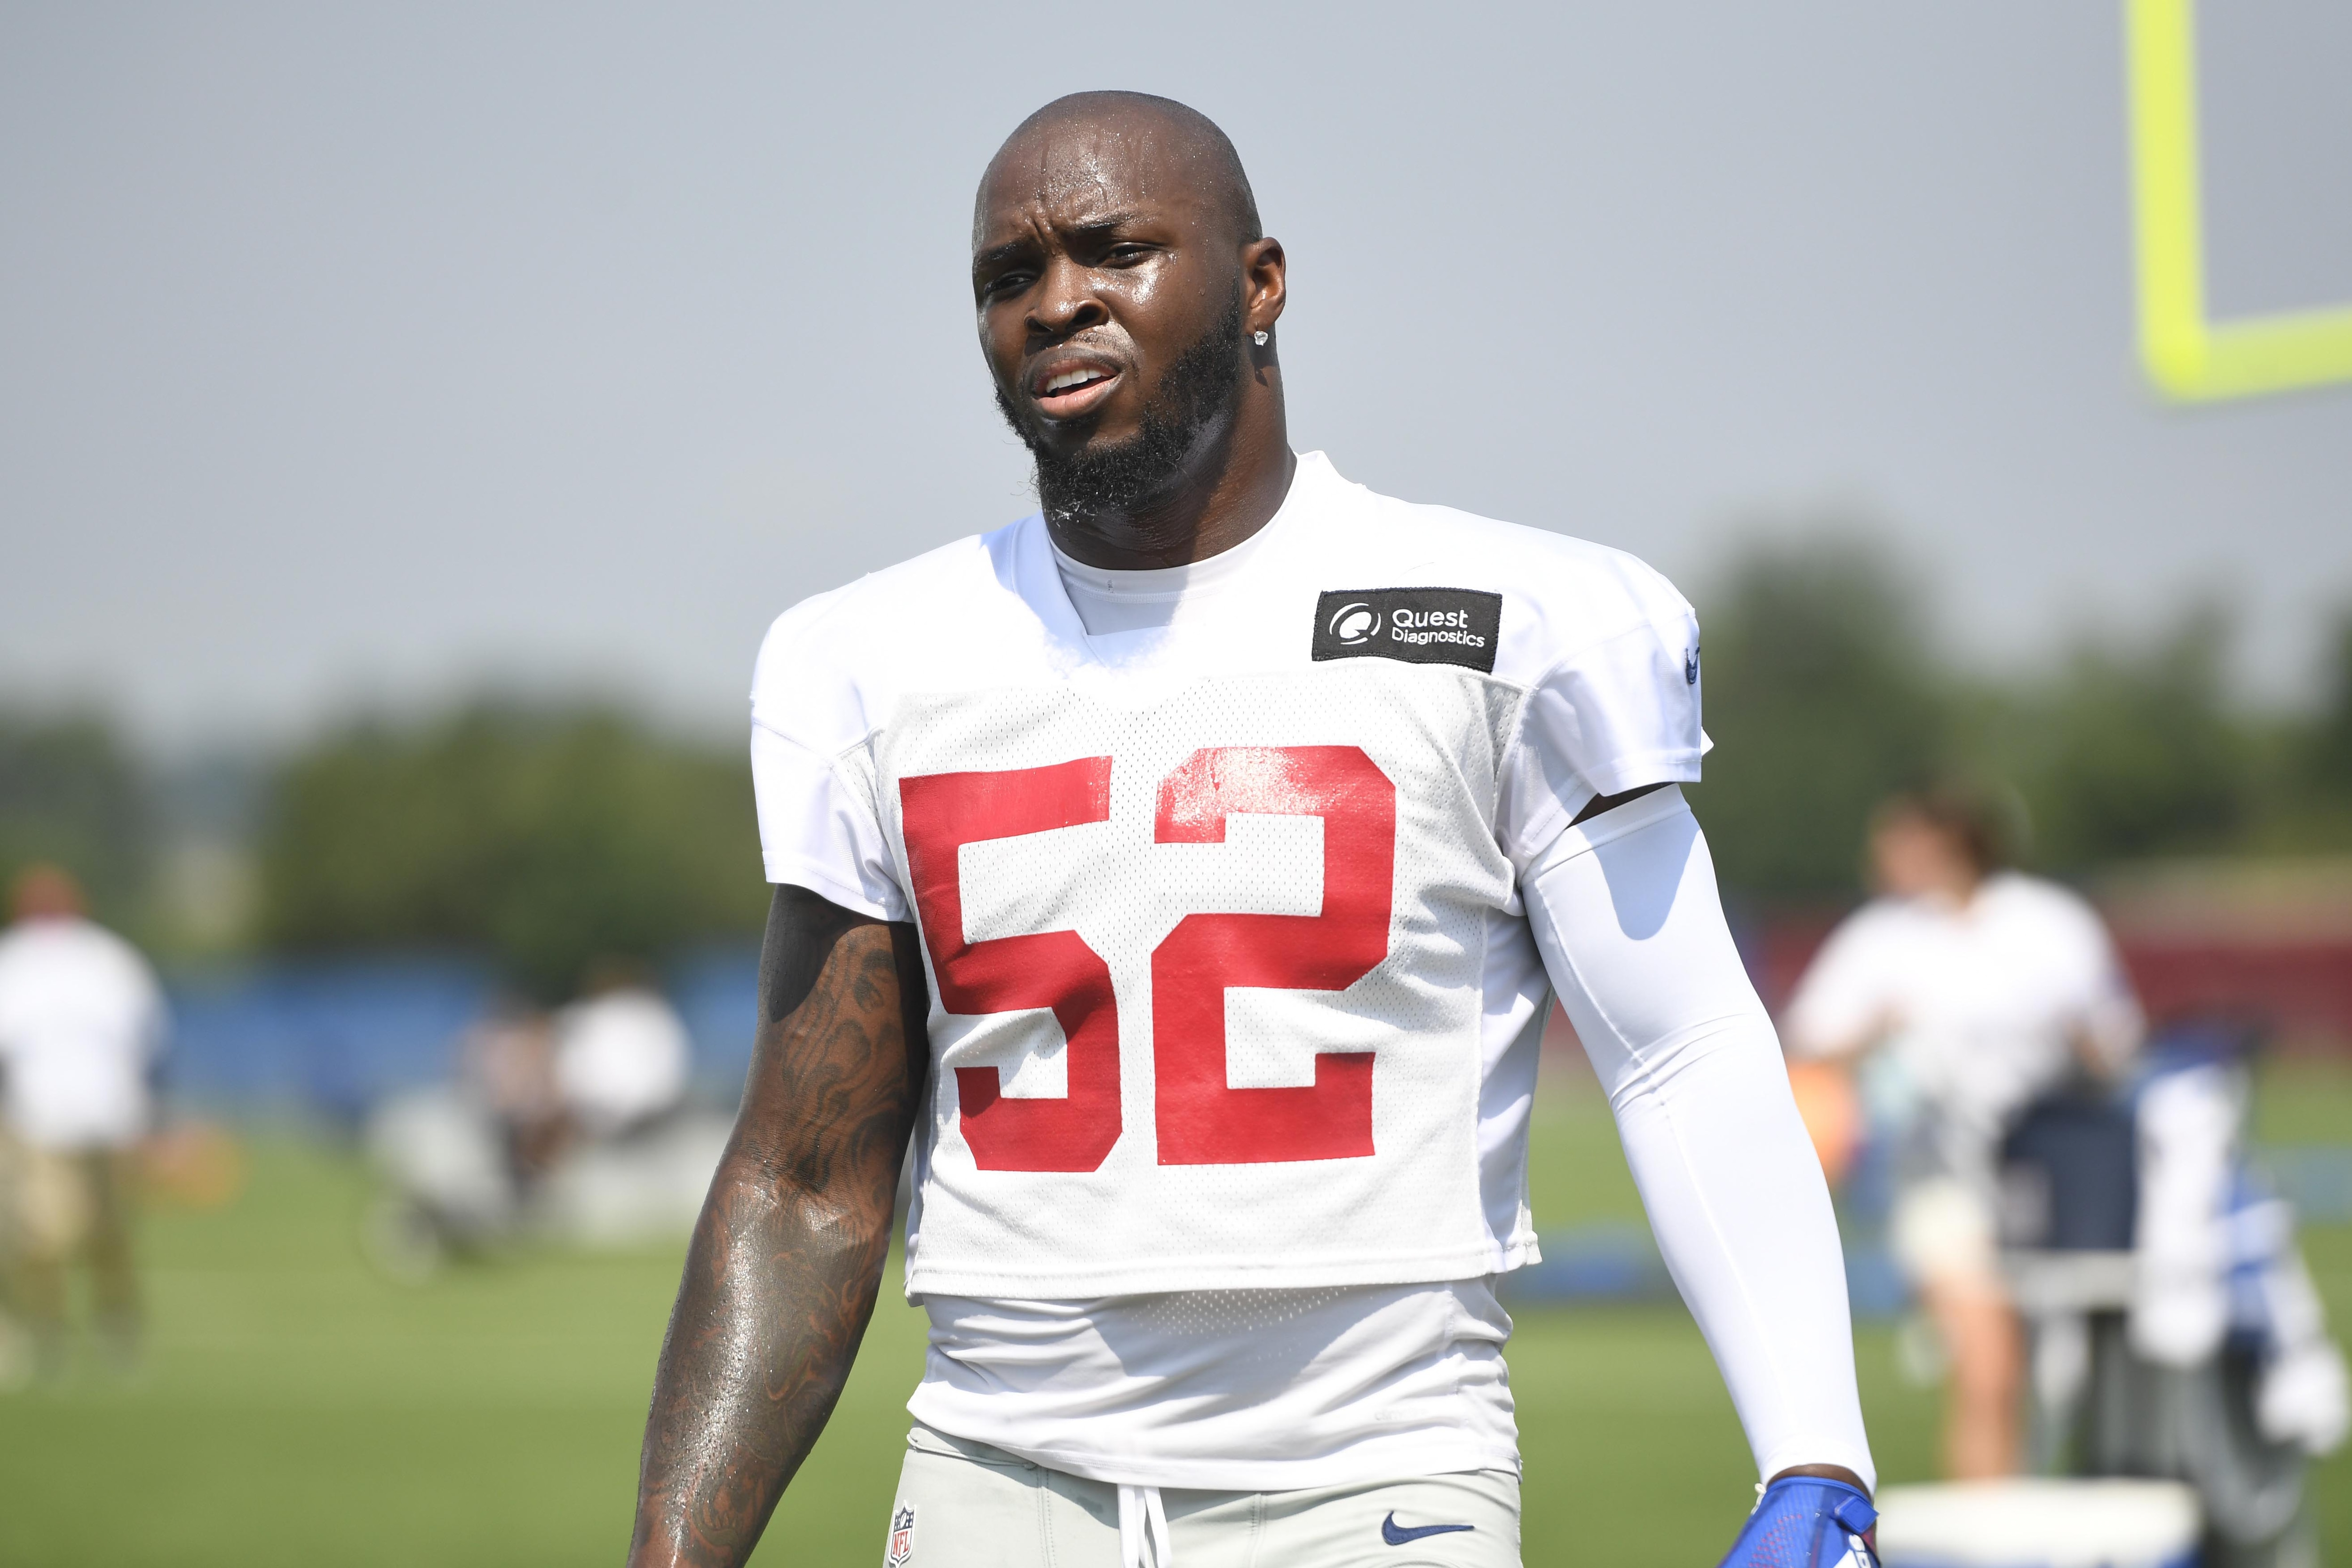 052ce7f6b3a New York Giants: Alec Ogletree Needs To Improve In 2019